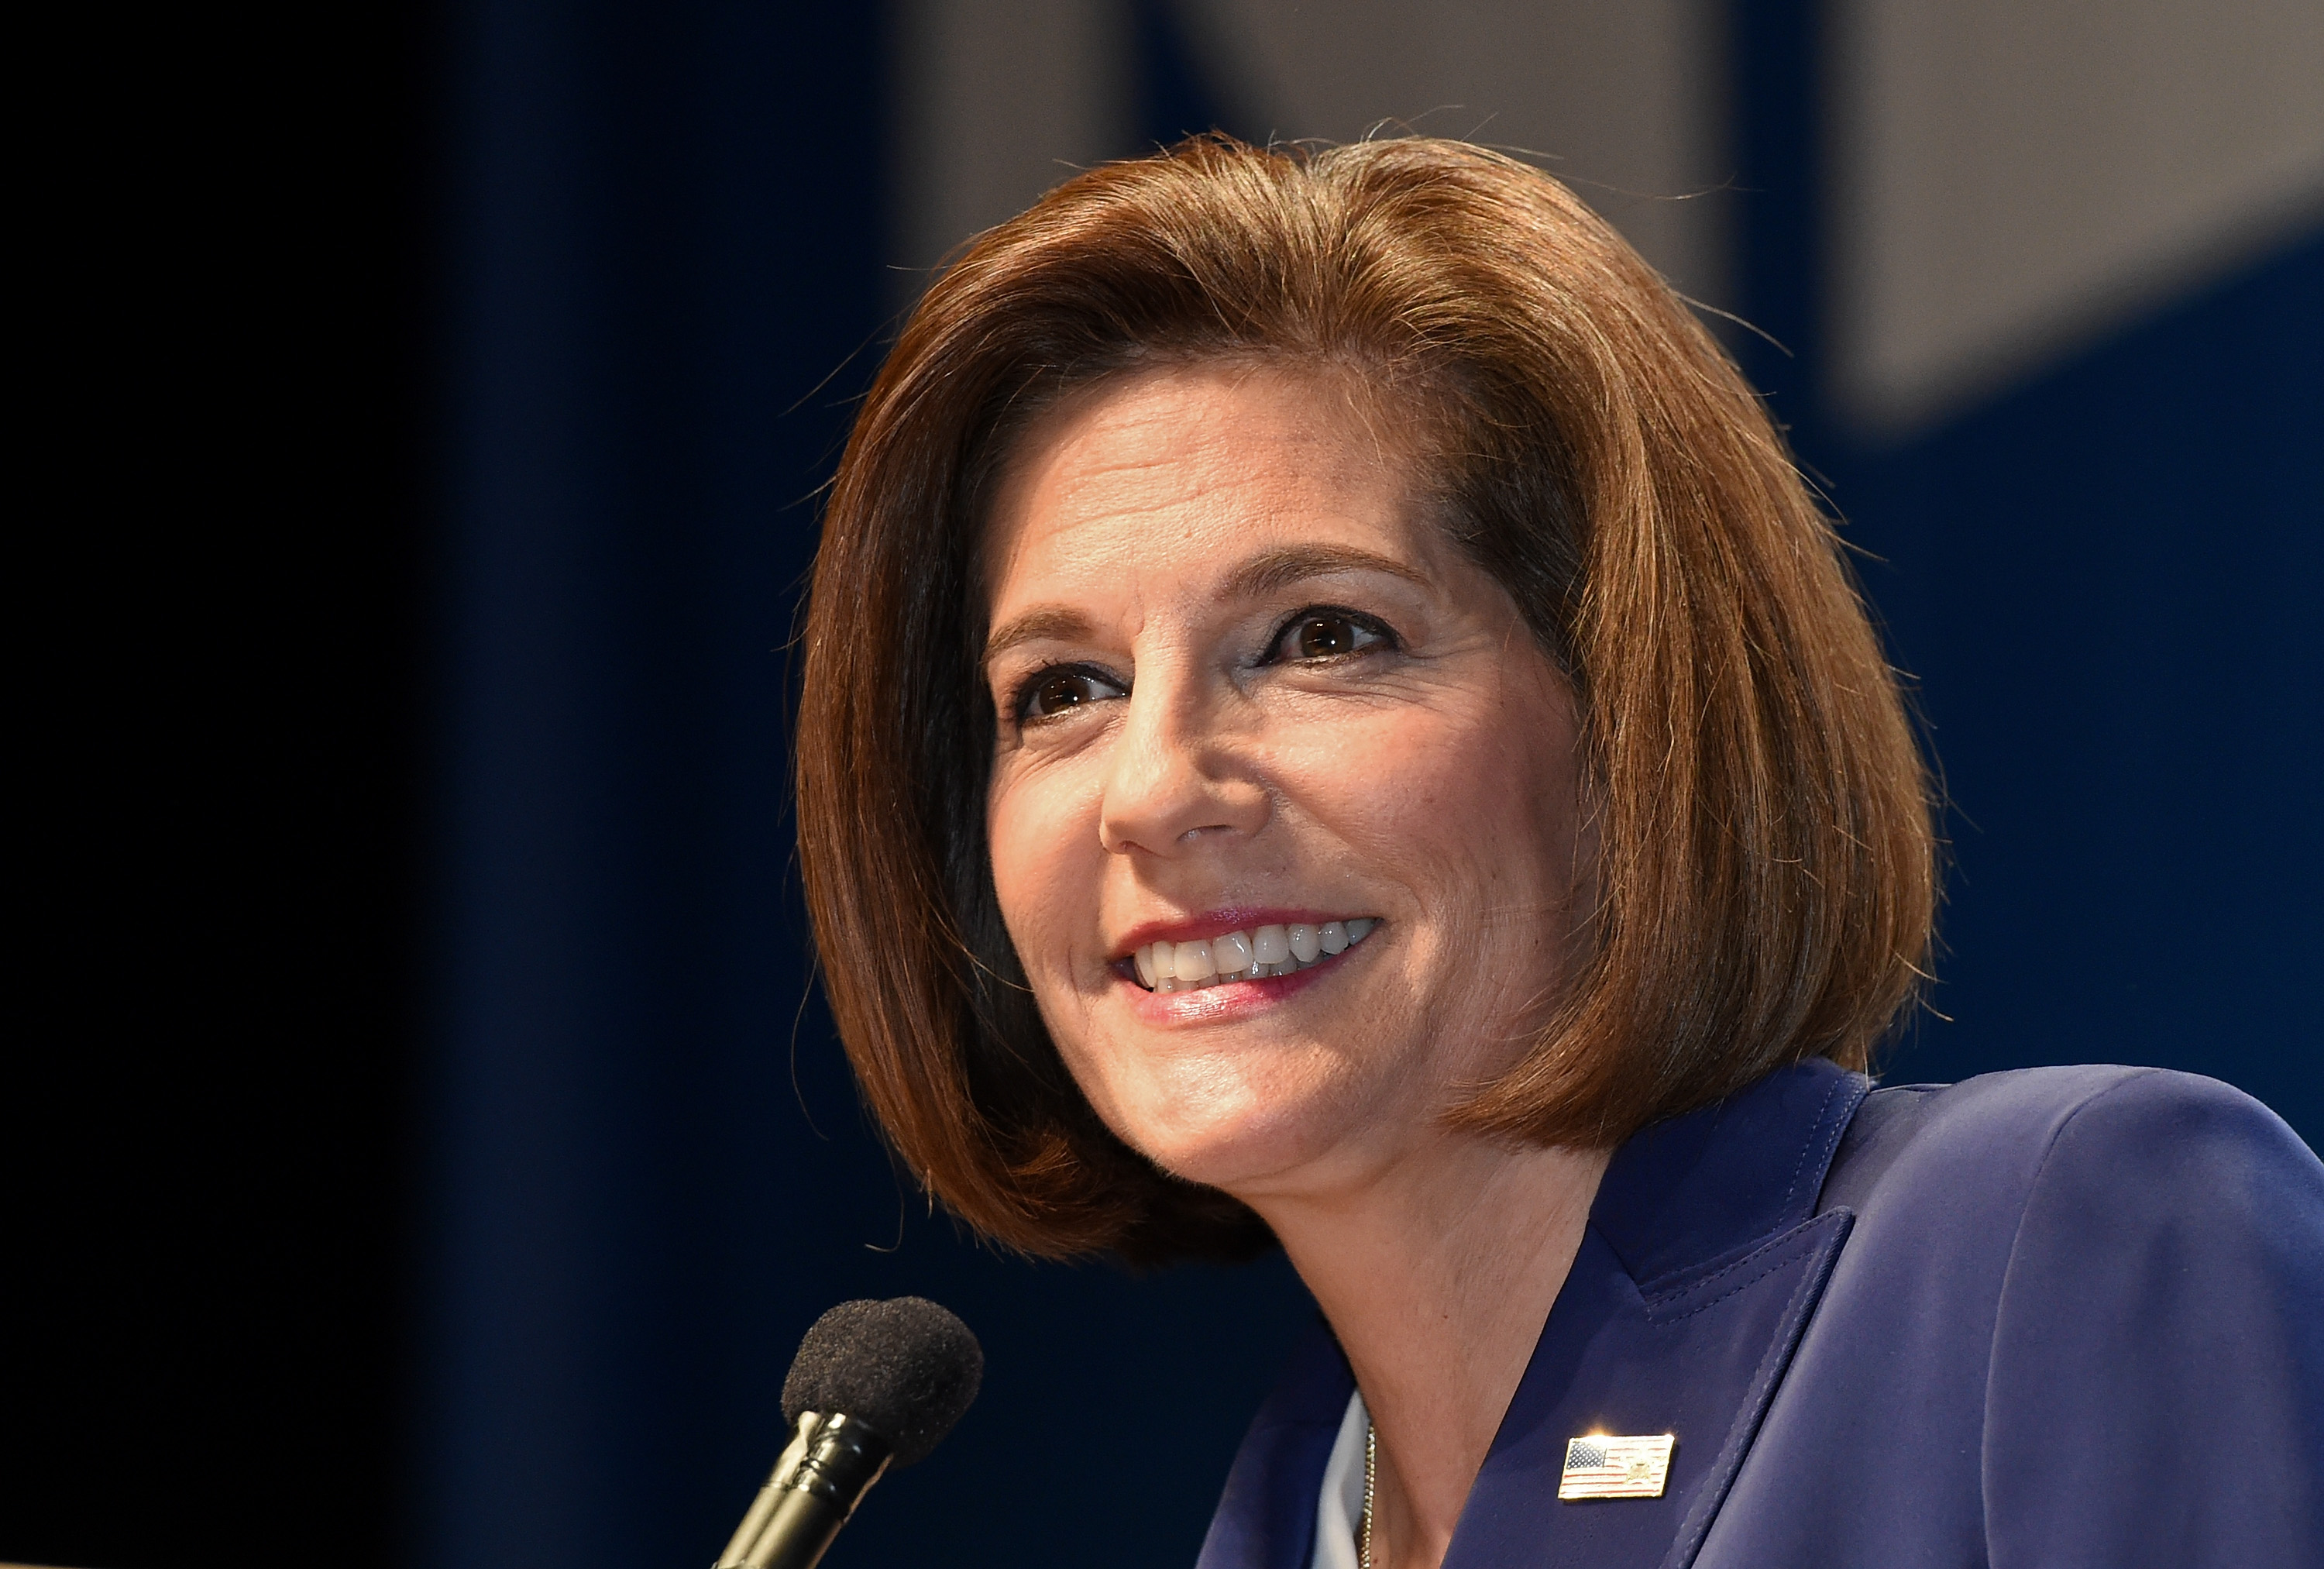 Democratic Senate Candidate Catherine Cortez Masto Appears At Nevada's Election Night Event